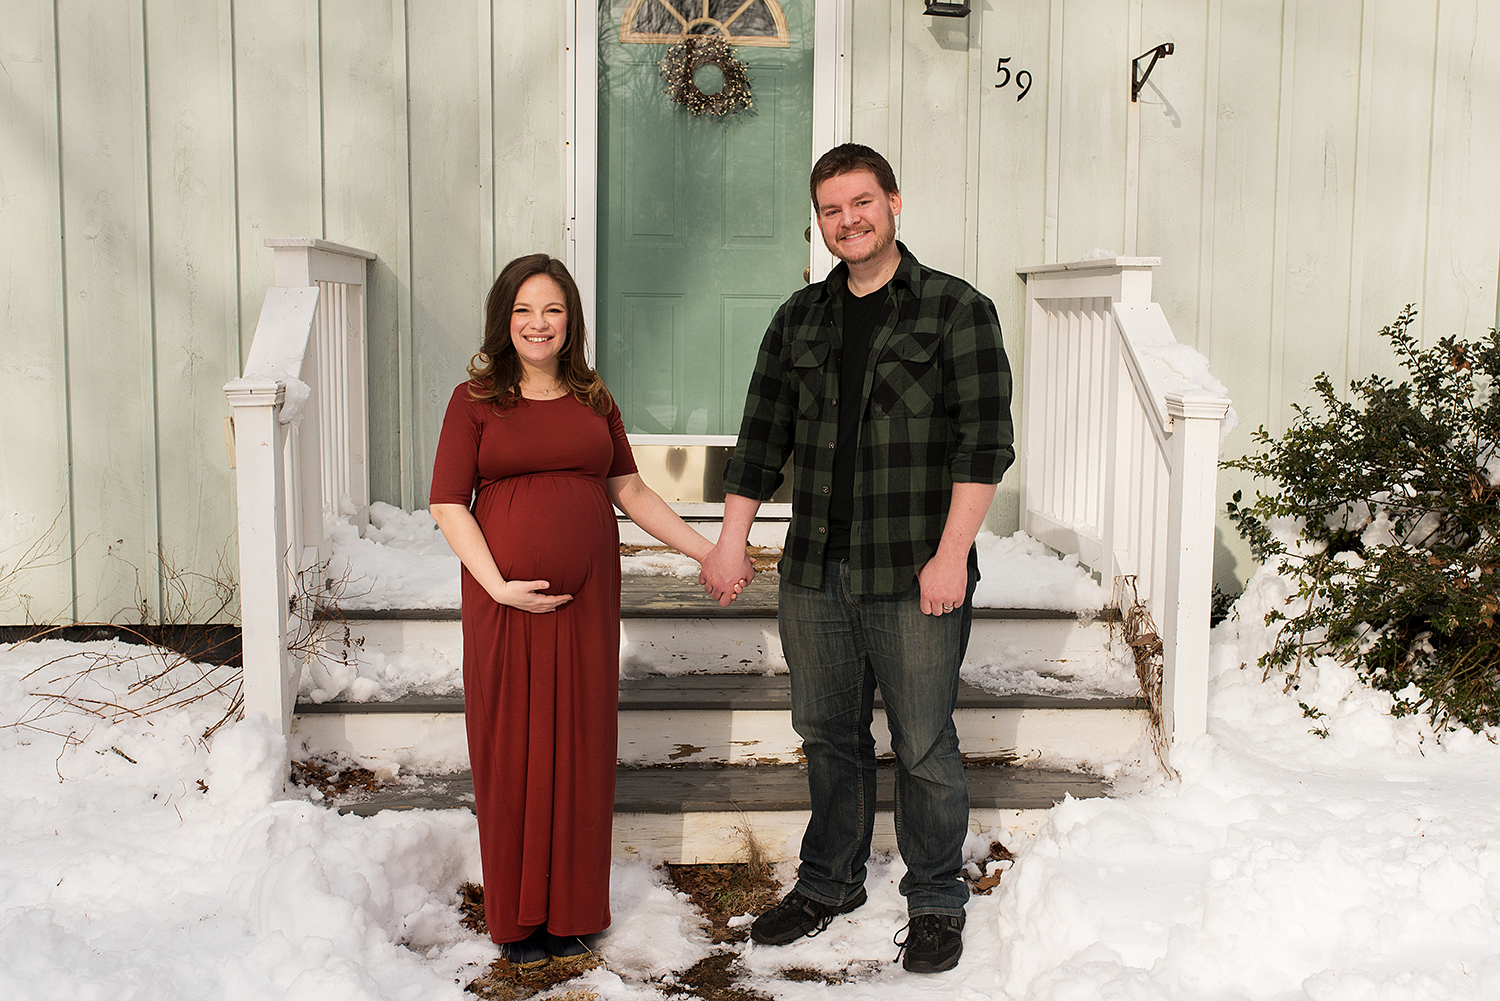 CT maternity photographer. Winter maternity photos at home